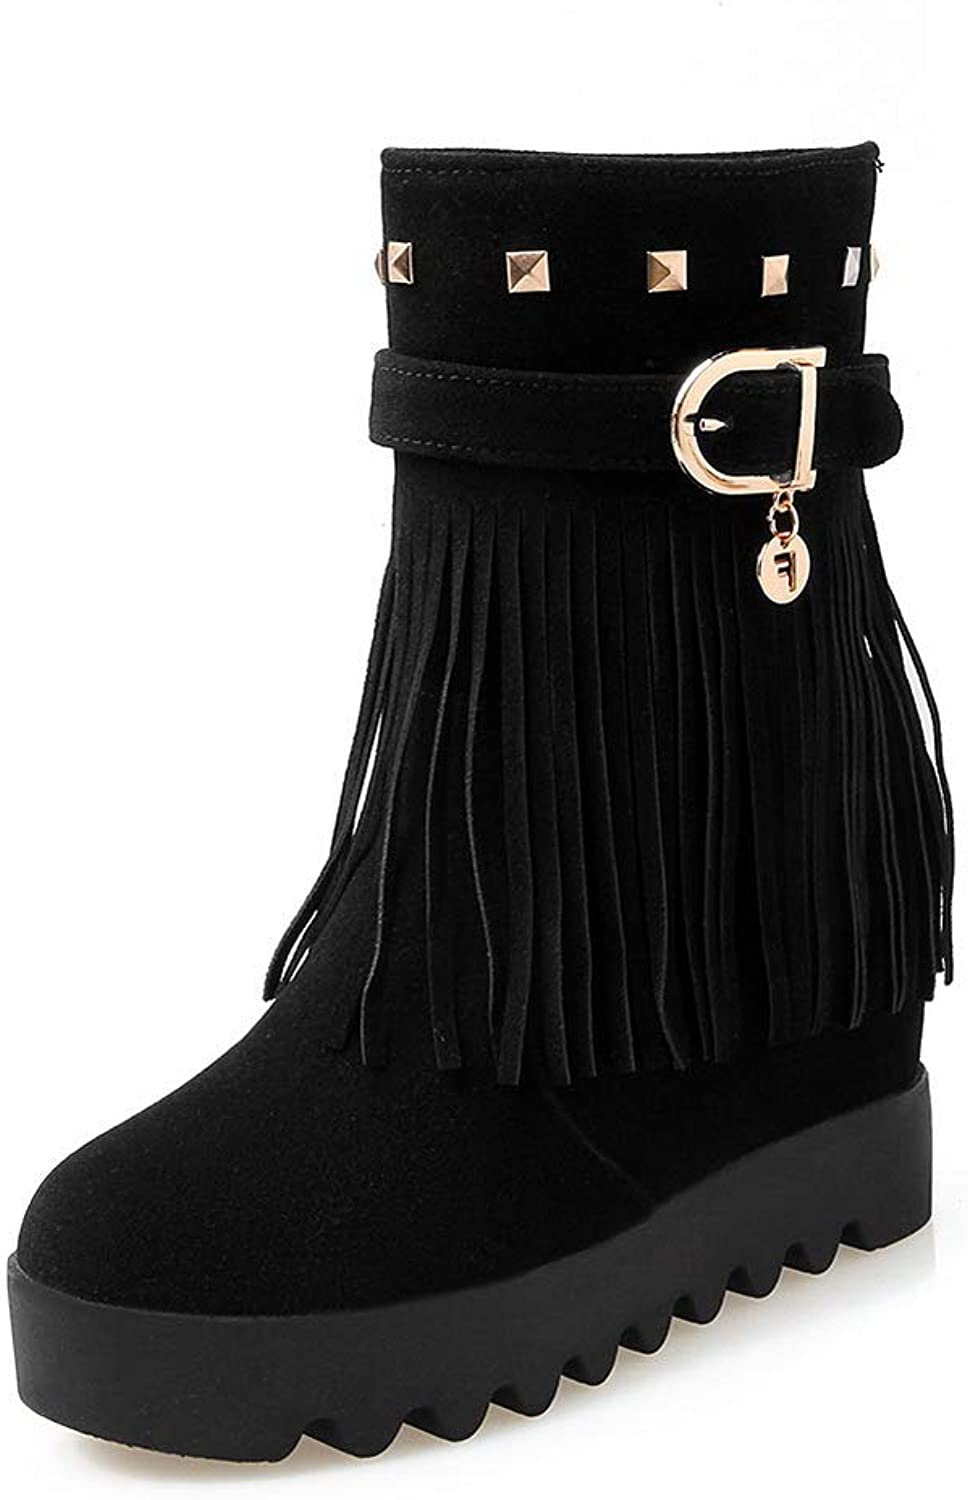 BalaMasa Womens Metal Buckles Grommets Tassels Imitated Suede Boots ABL11091